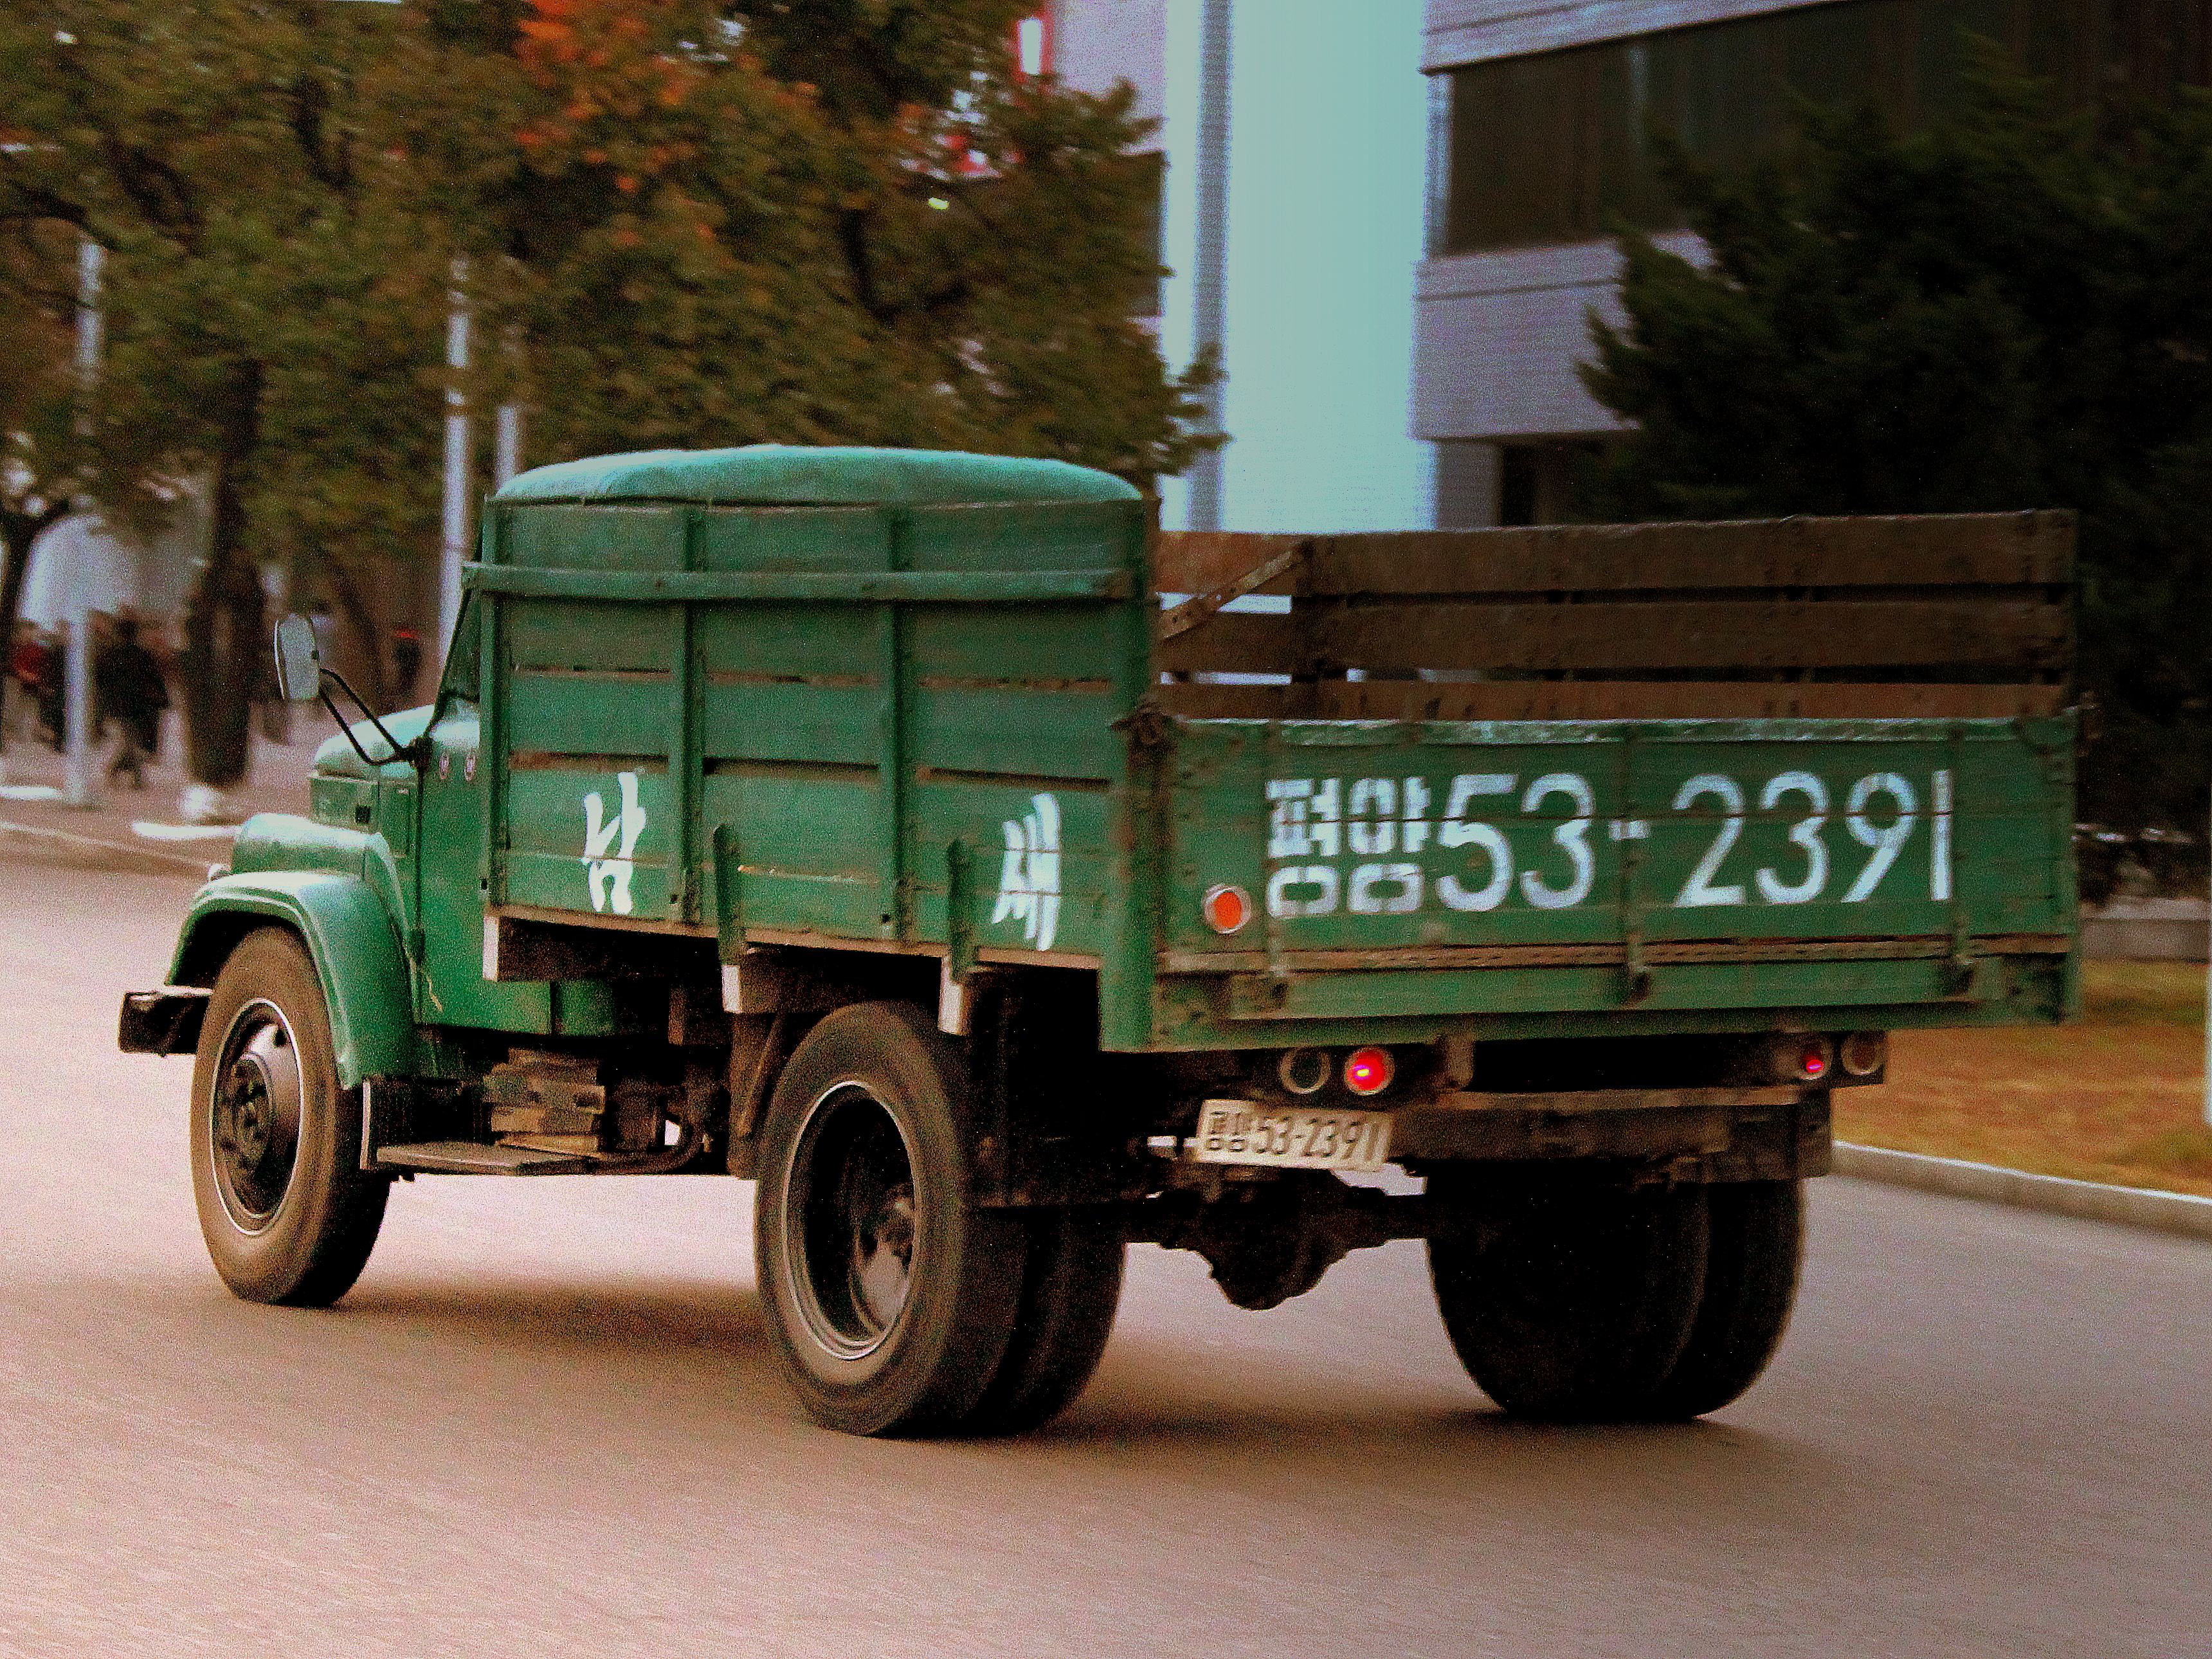 SUNGRI_58_NORTH_KOREAN_TRUCK_(BASED_ON_A_RUSSIAN_DESIGN)IN_PYONGYANG_CITY_DPRK_NORTH_KOREA_OCT_2012_